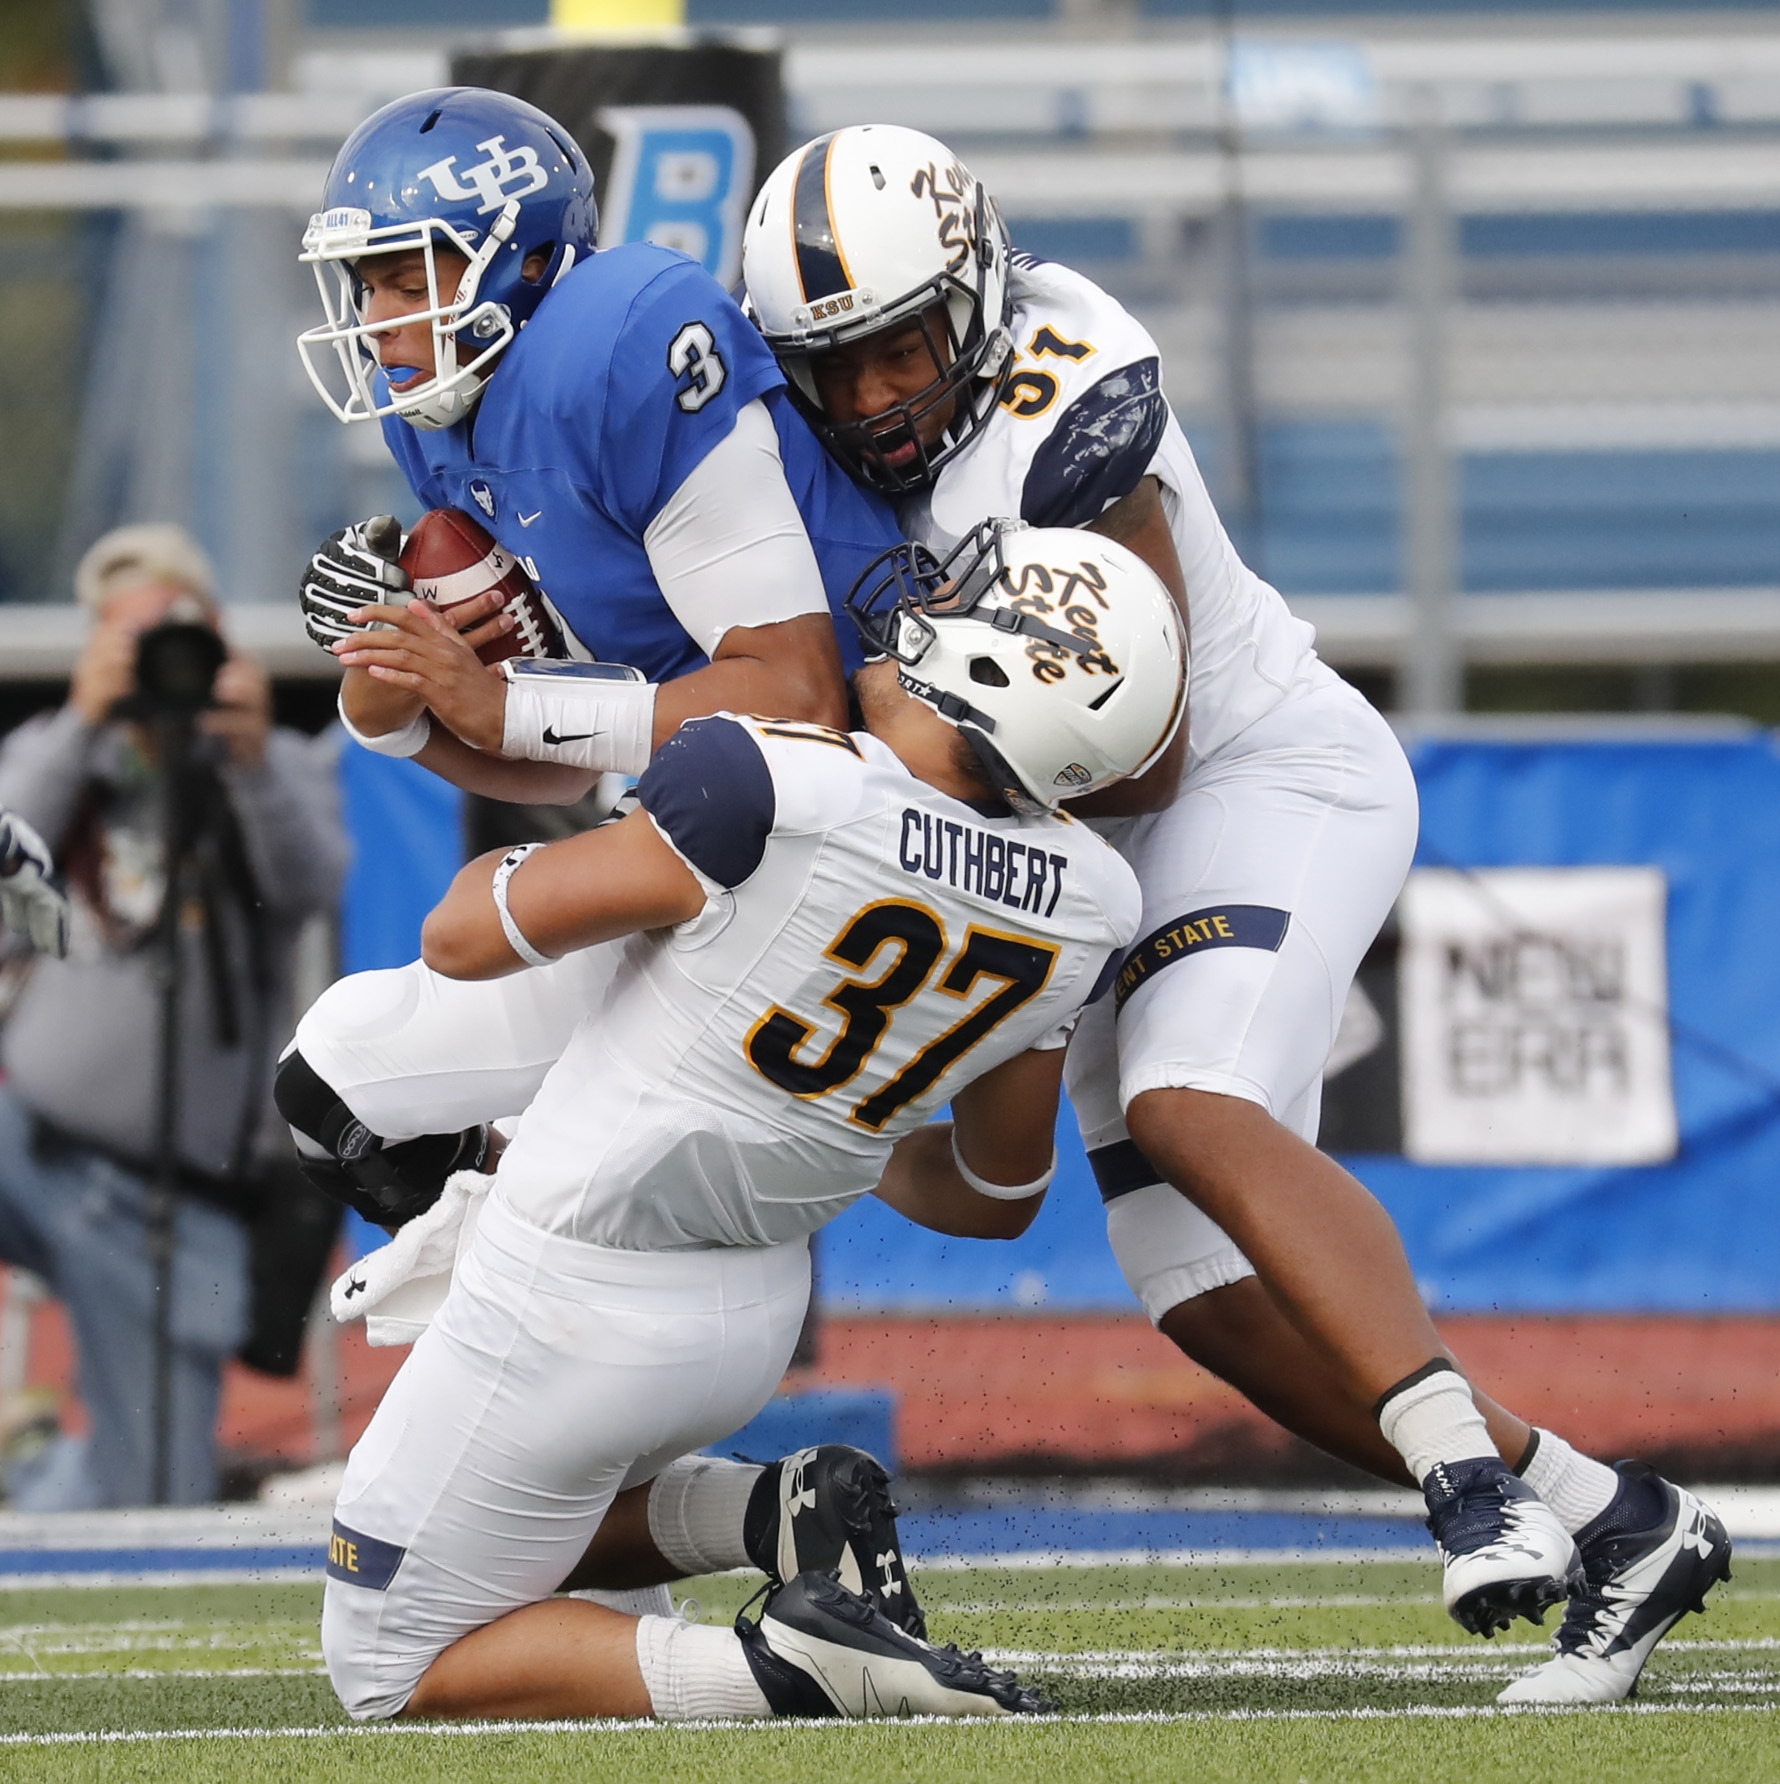 UB quarterback Tyree Jackson is taken down for a sack by Kent State's Nick Cuthbert and Terence Waugh. Jackson completed 20 of 39 passes for 250 yards and one touchdown with no interceptions.